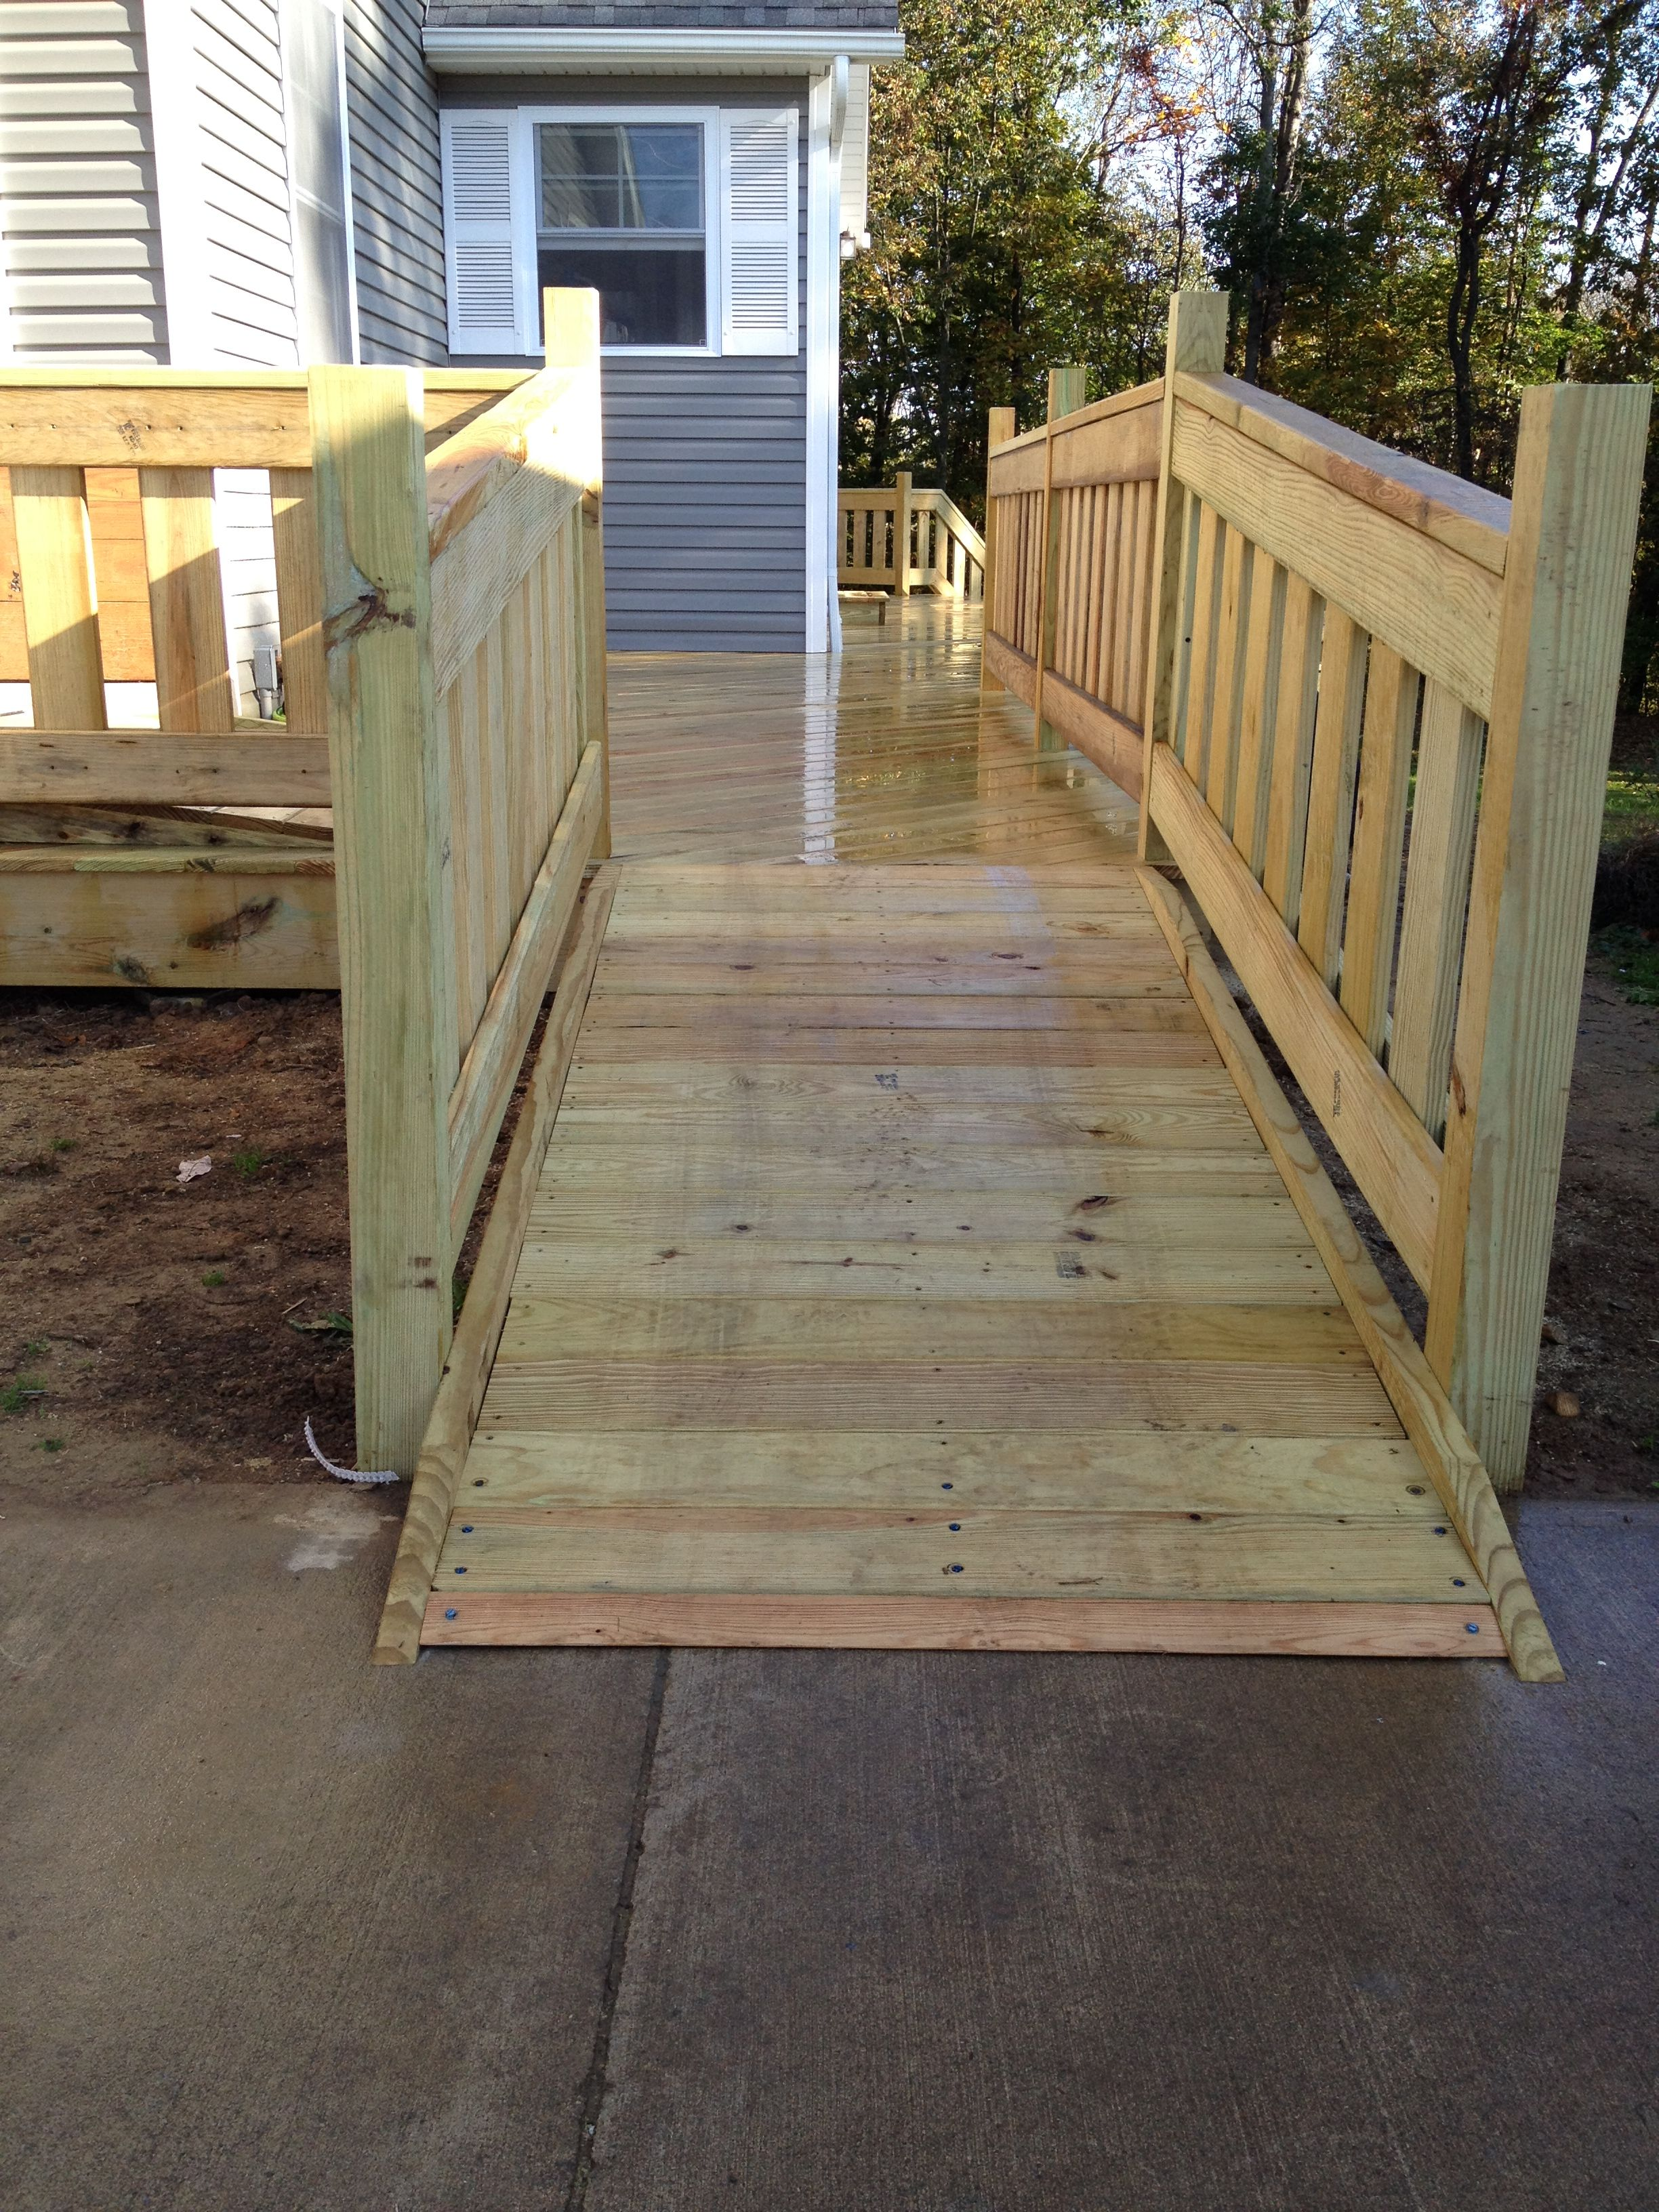 Custom Treated Lumber Handicap Ramp And Railings For The Deck.